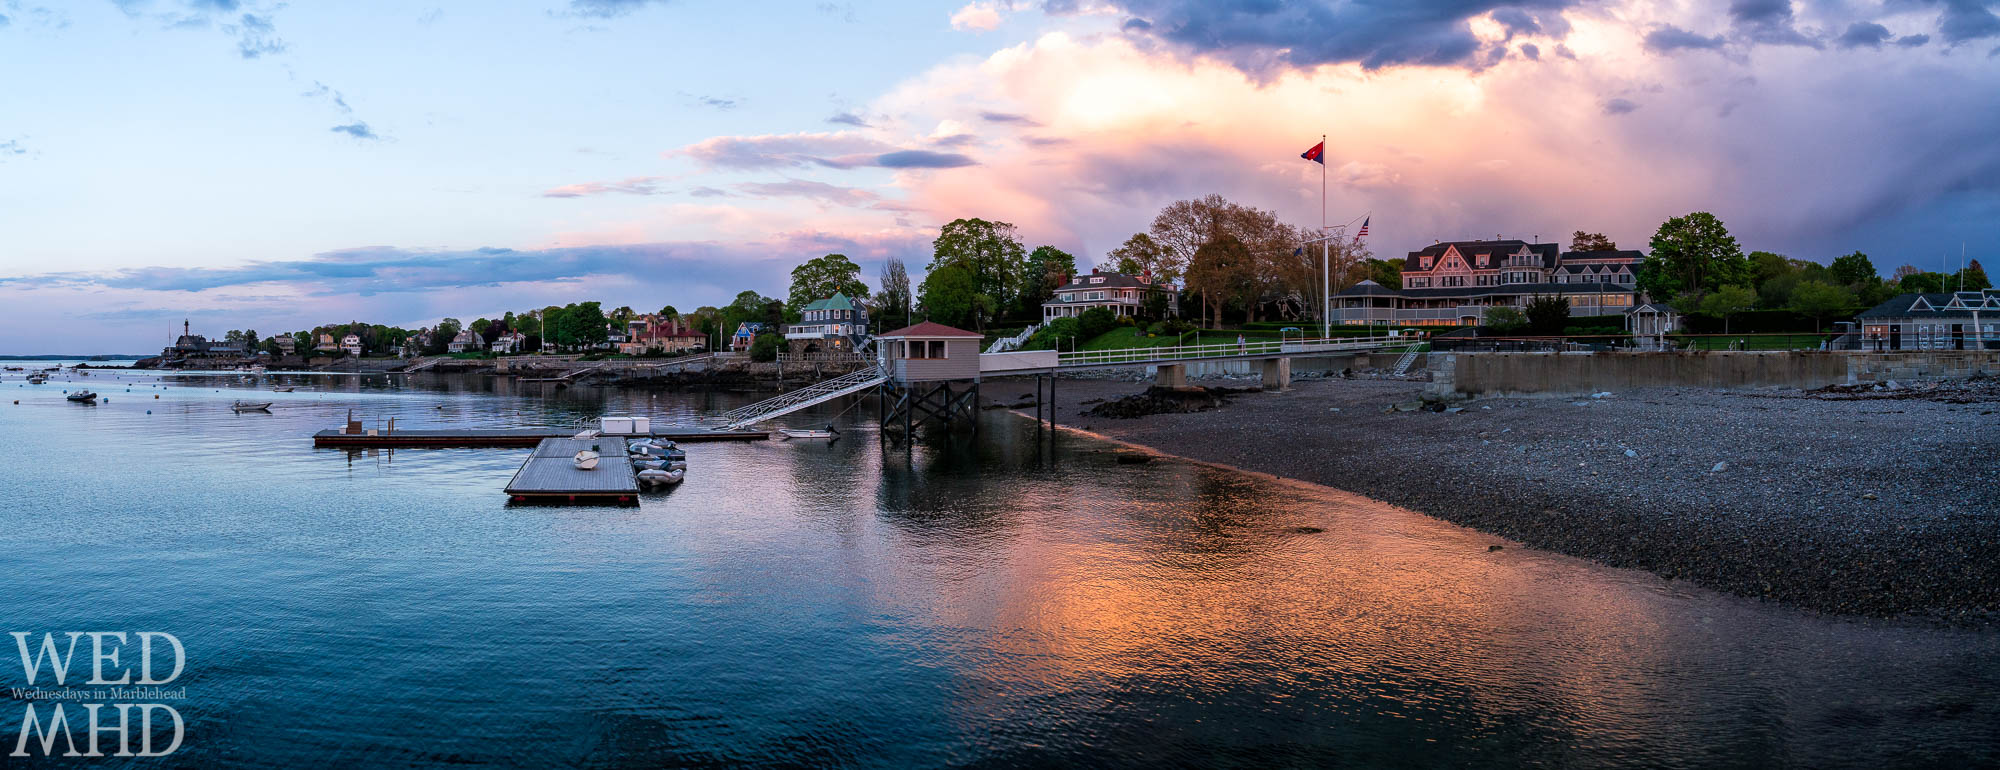 The Eastern Yacht Club set aglow in evening light with sunset lighting up the clouds above and reflected in the waters of the harbor